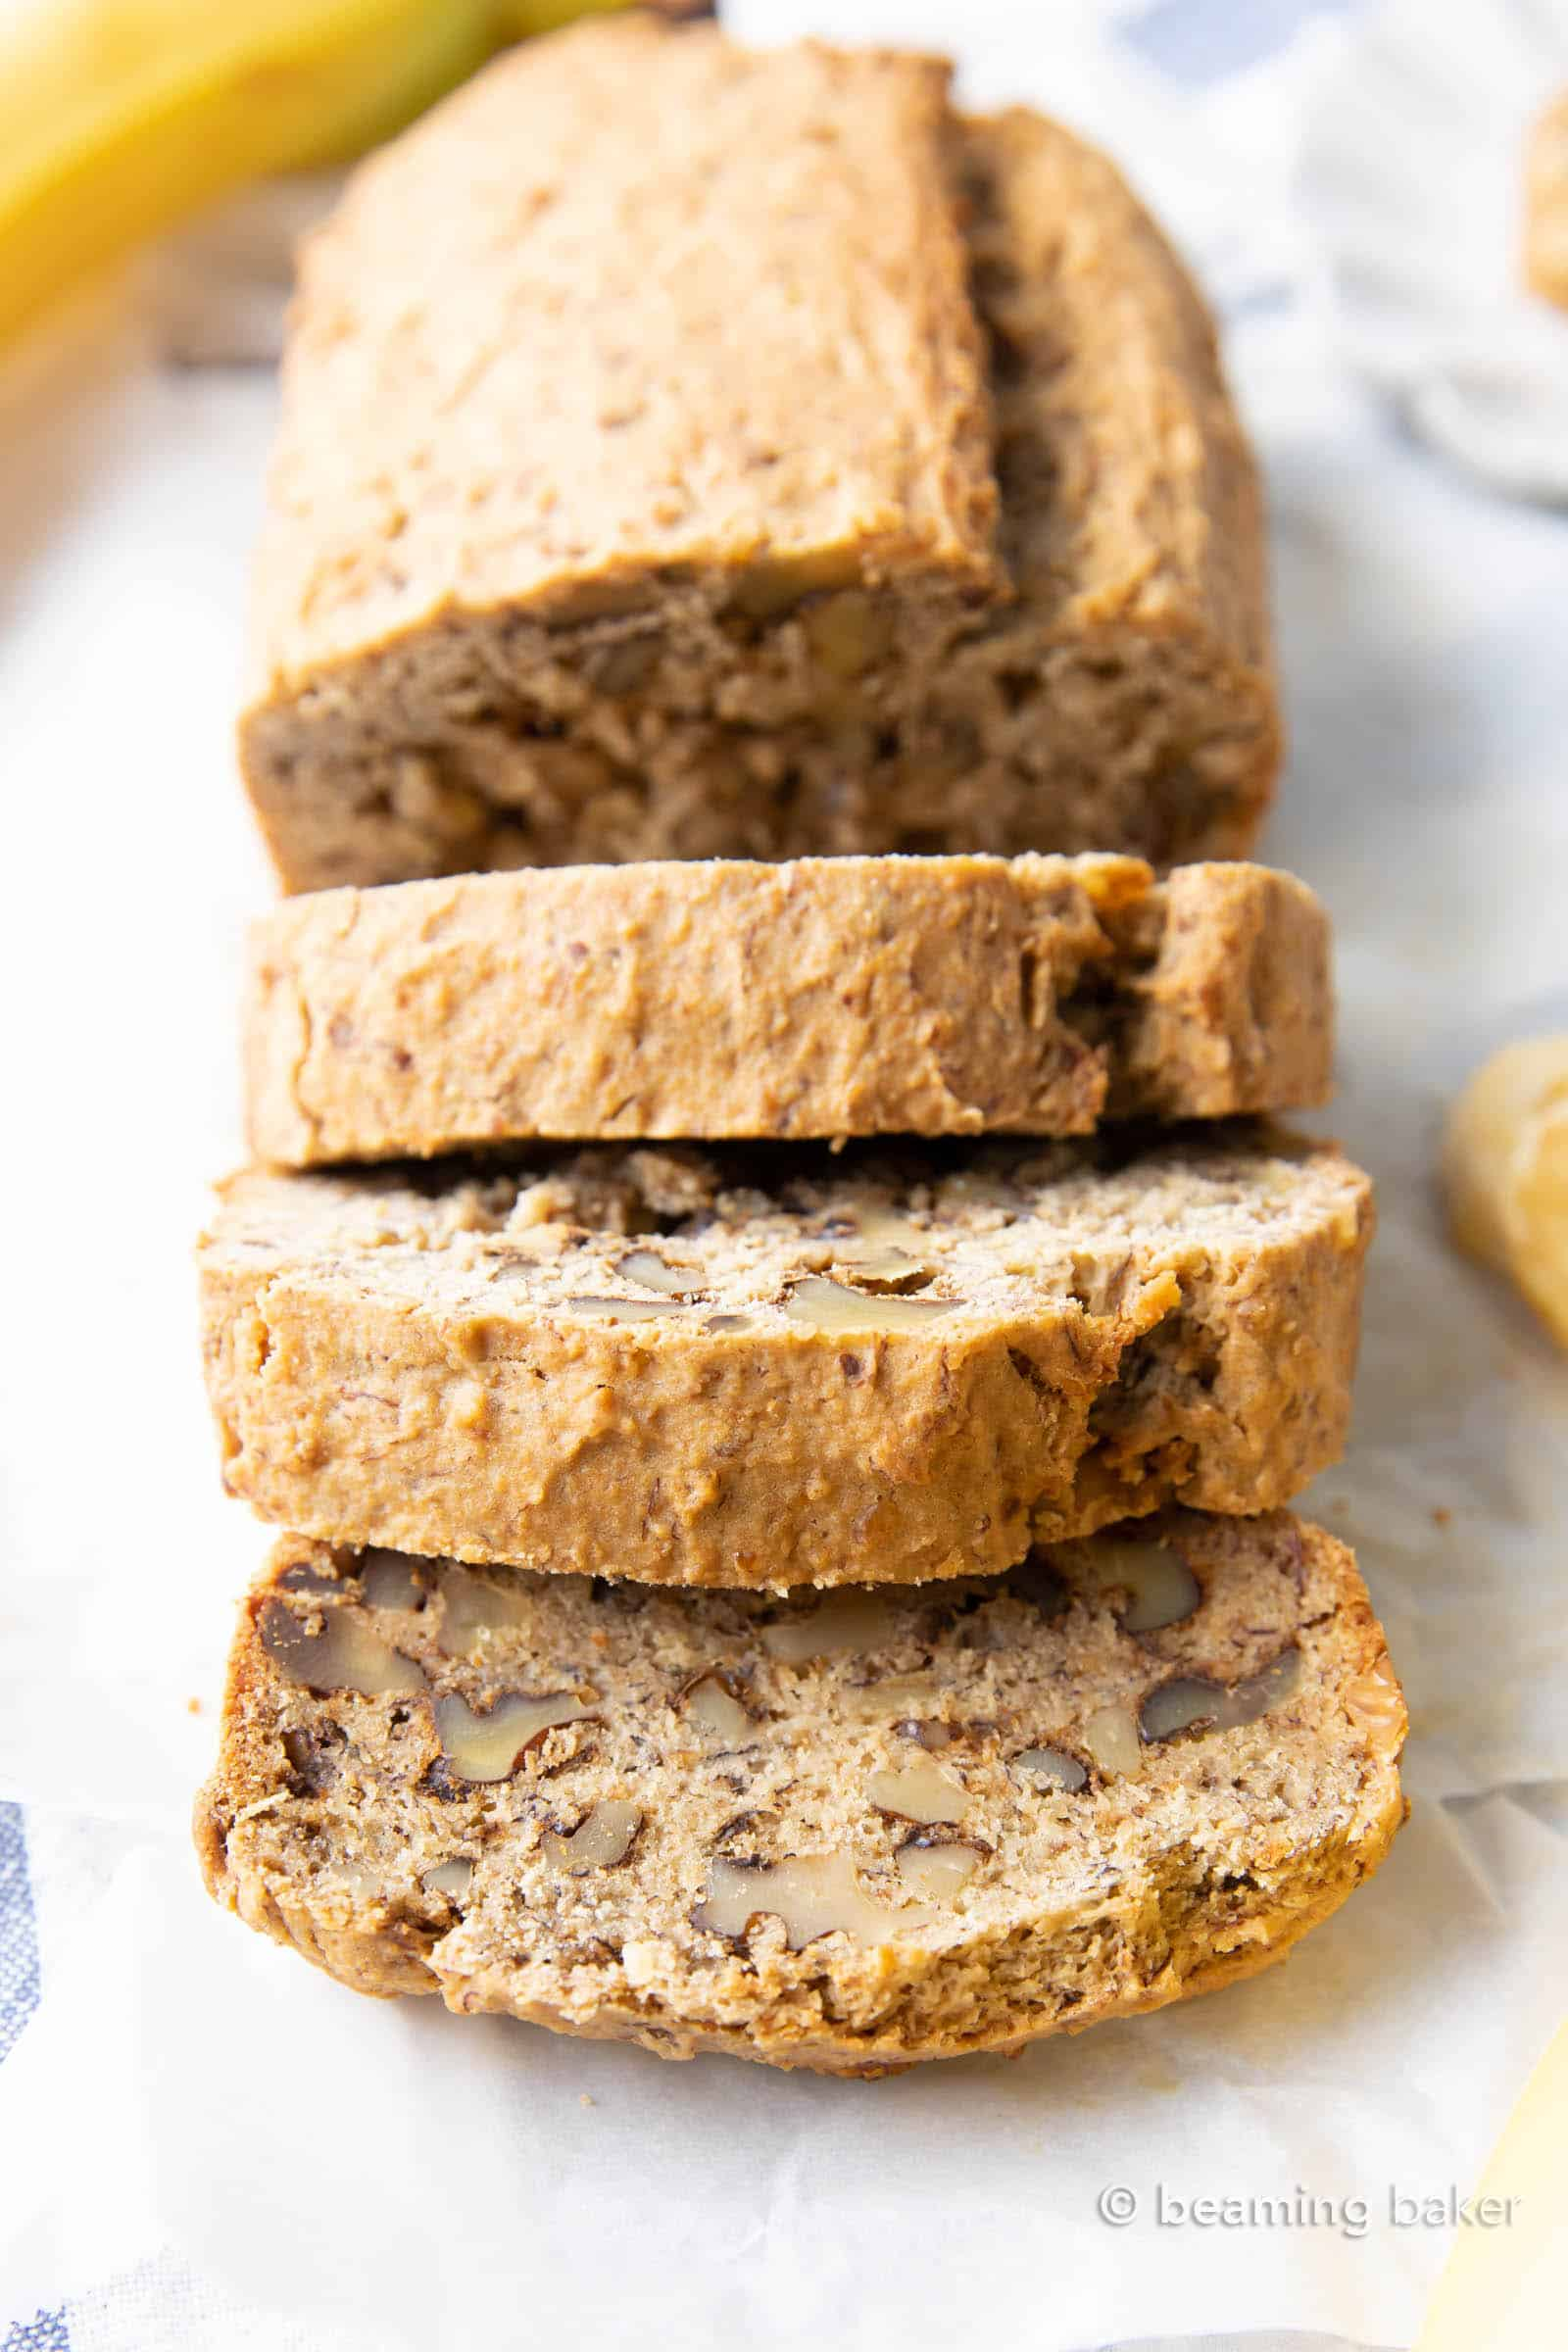 Easy Gluten Free Banana Bread Recipe (Vegan, Dairy-Free ...